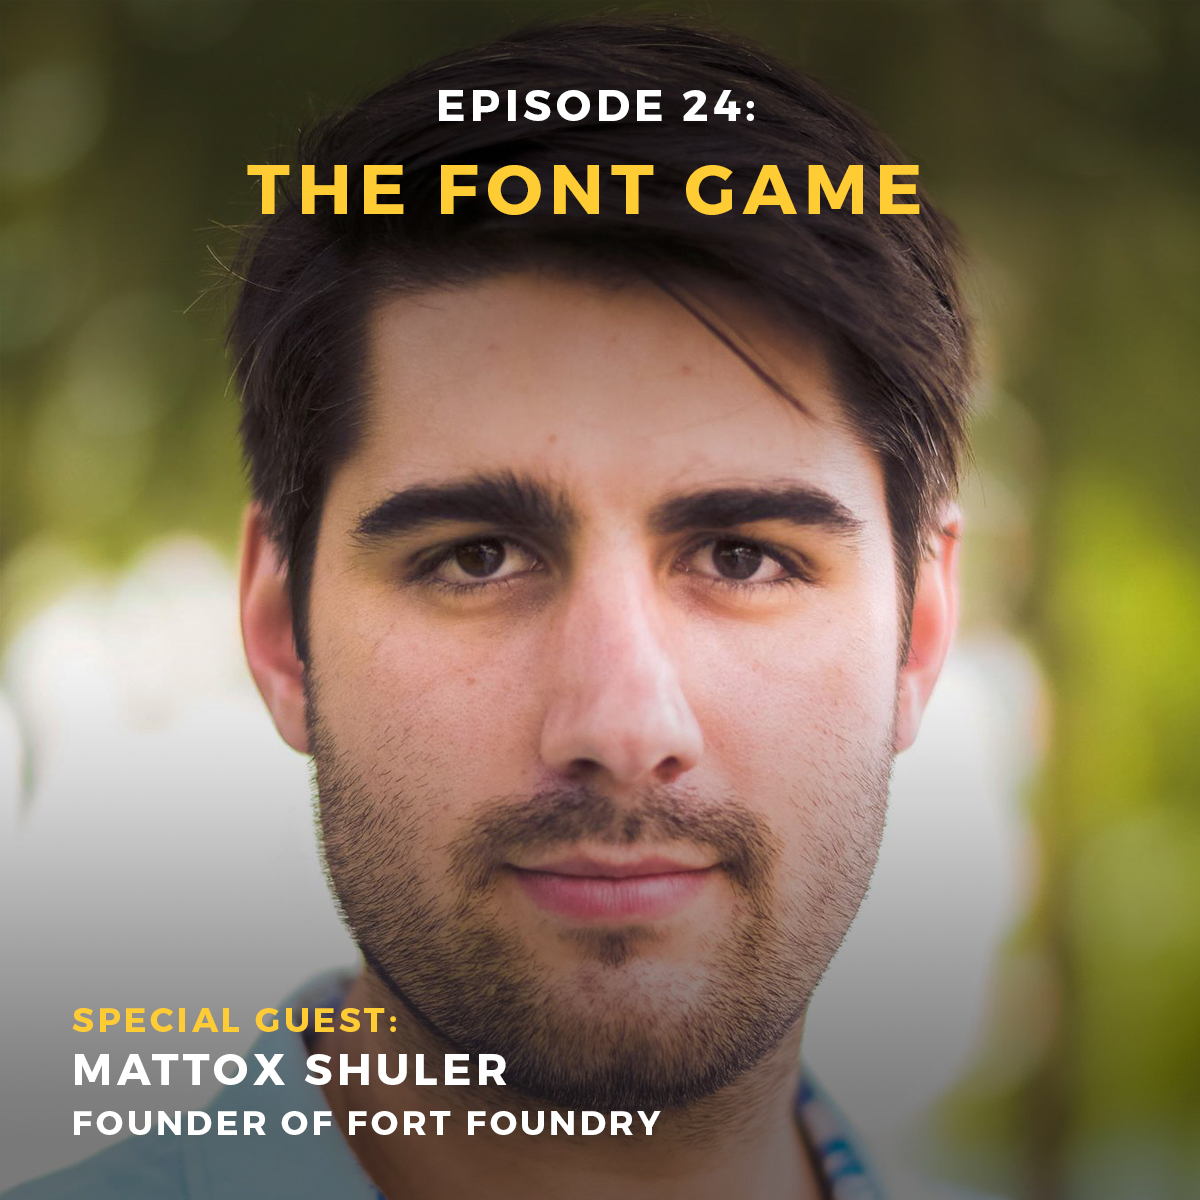 Creative podcast episode 24 with Mattox Shuler of Fort Foundry and Keymaster Games